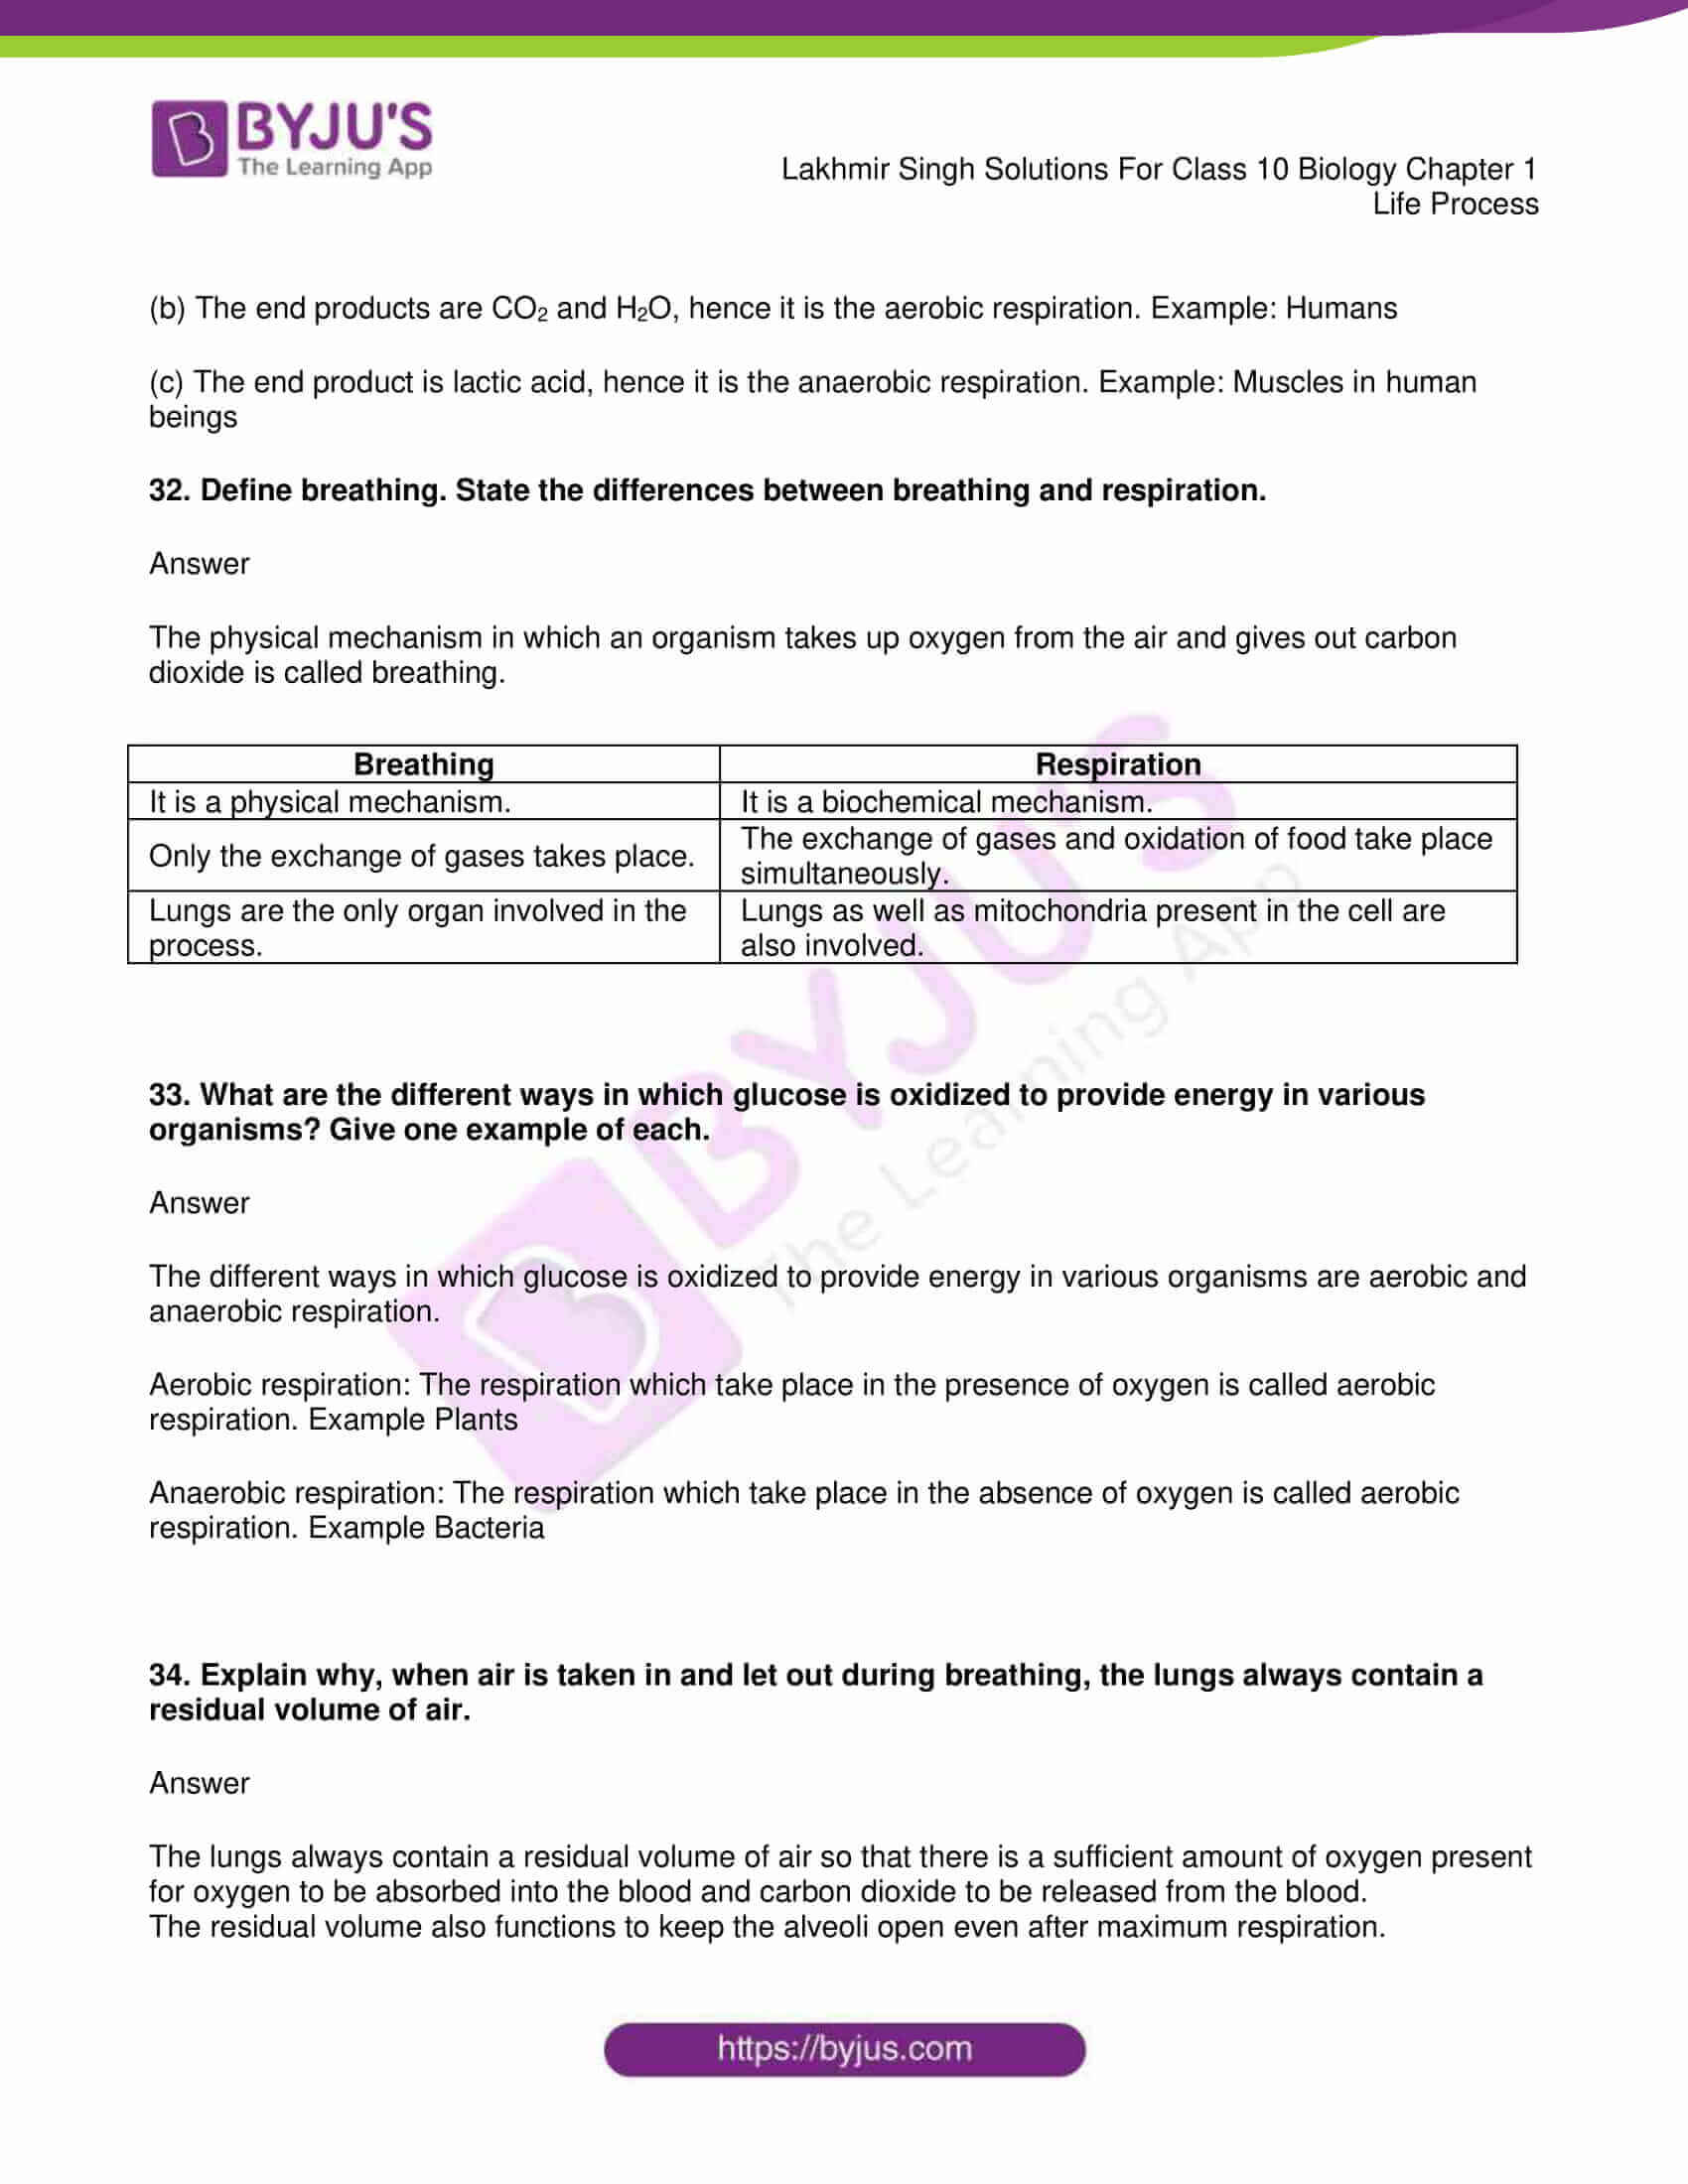 Lakhmir Singh Biology Class 10 Solutions For Chapter 1 Life Process Free Pdf